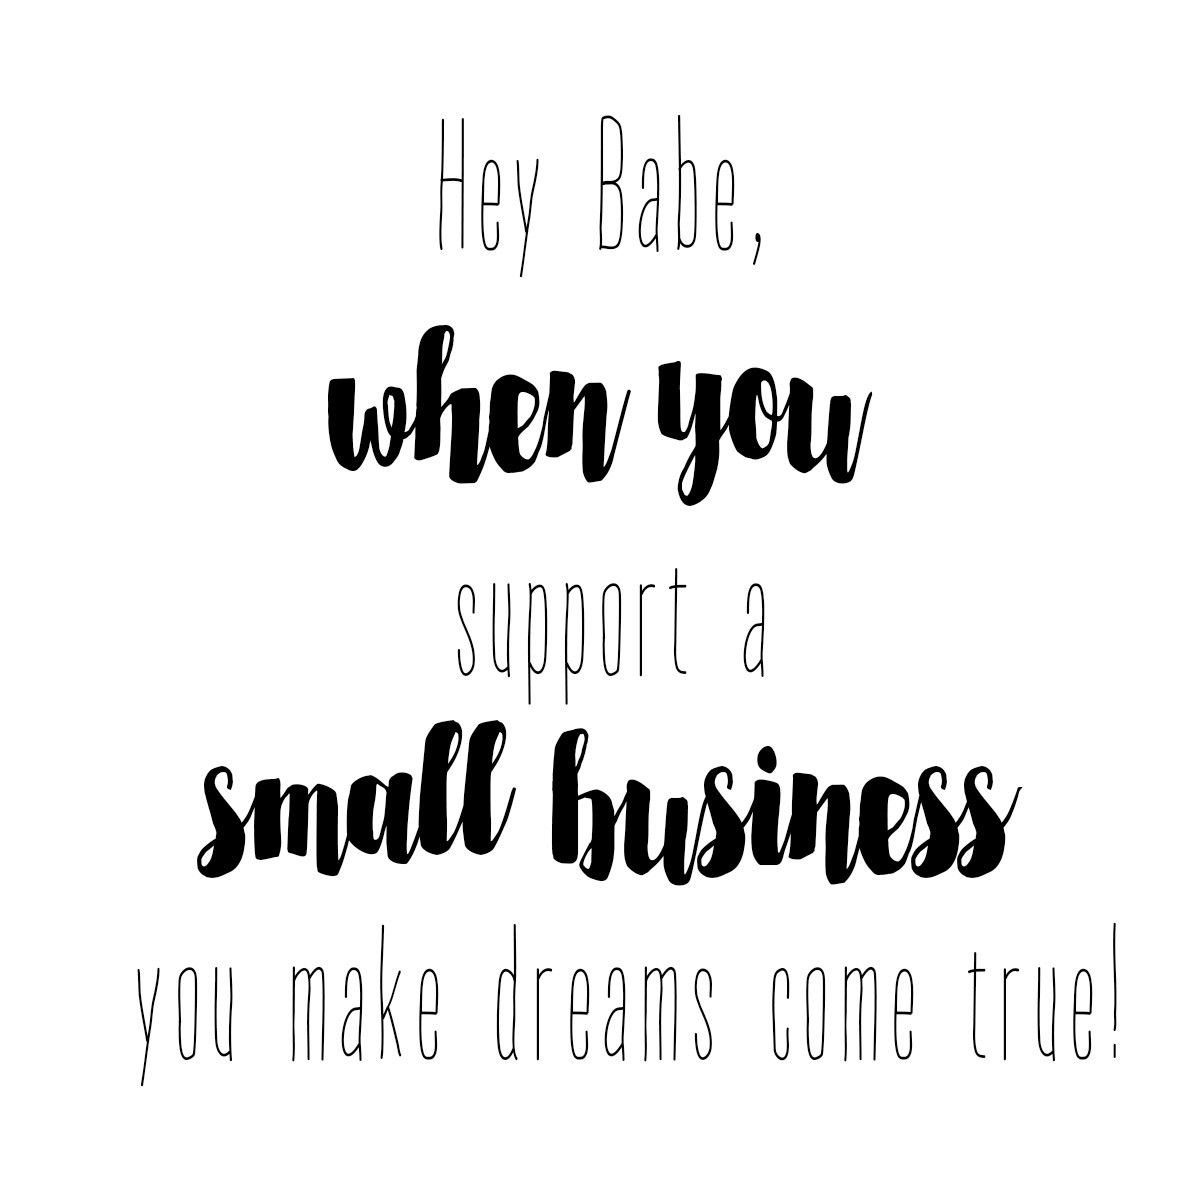 Small Business Quotes Support Small Business Quote  Business Quotes  Pinterest